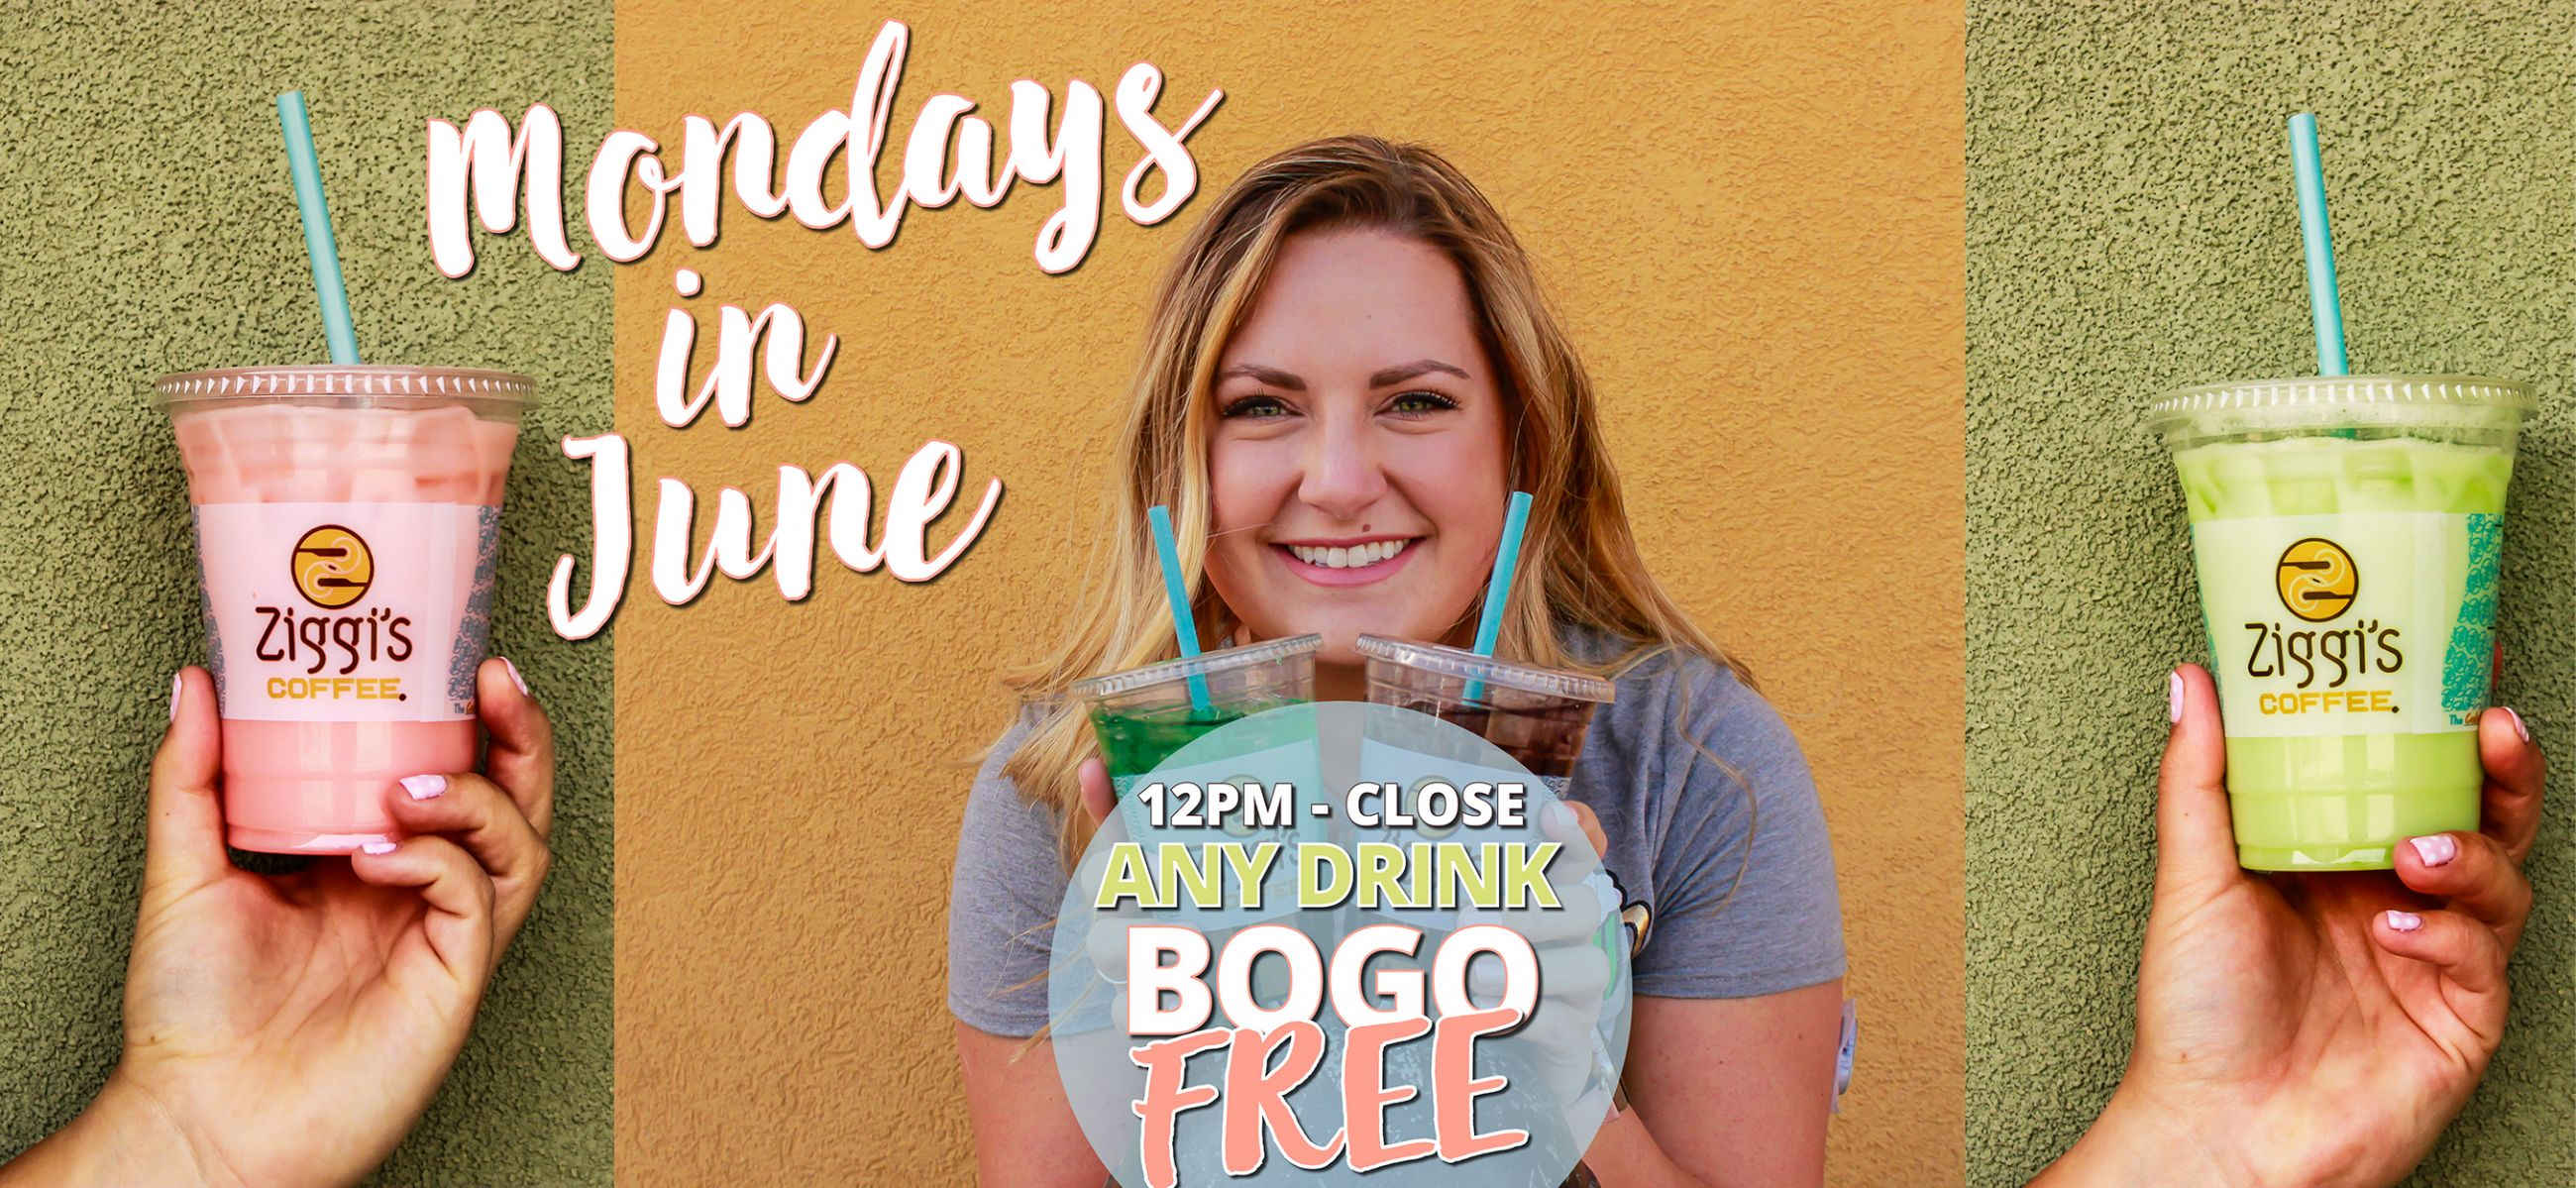 Buy one, get one free DRINK discount on Mondays throughout the month of June - Ziggi's Coffee